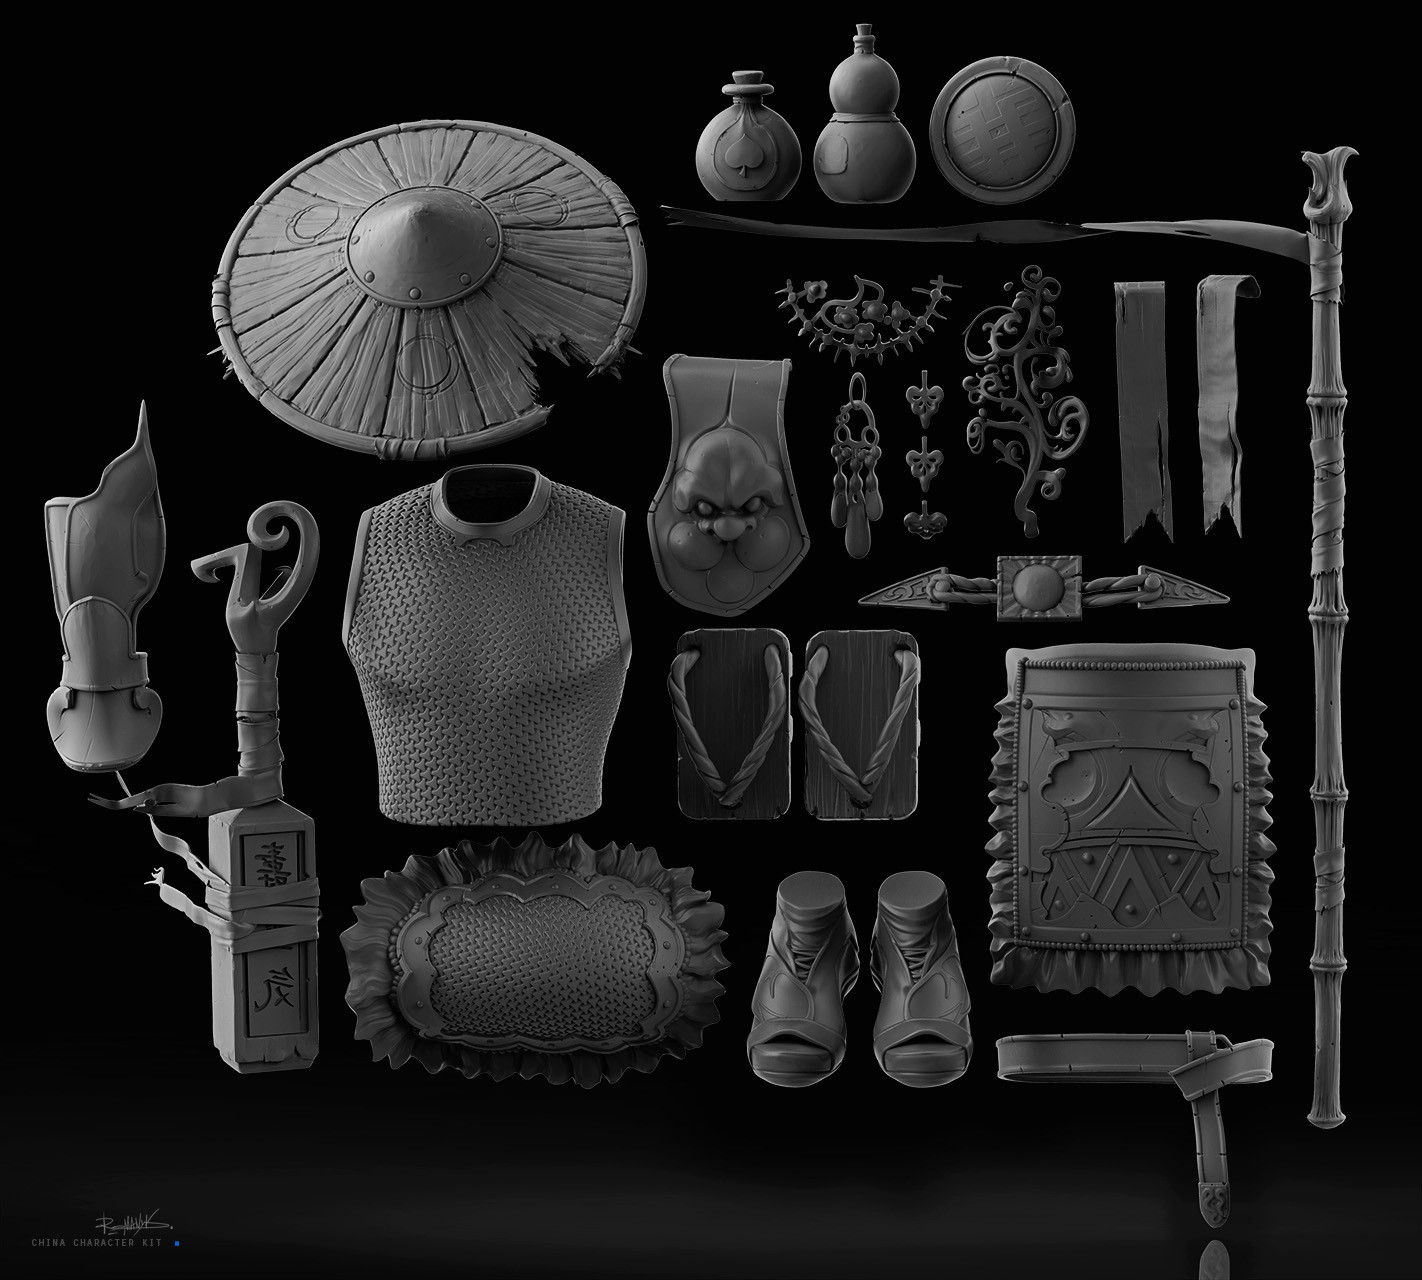 Yuriy romanyk china character kit